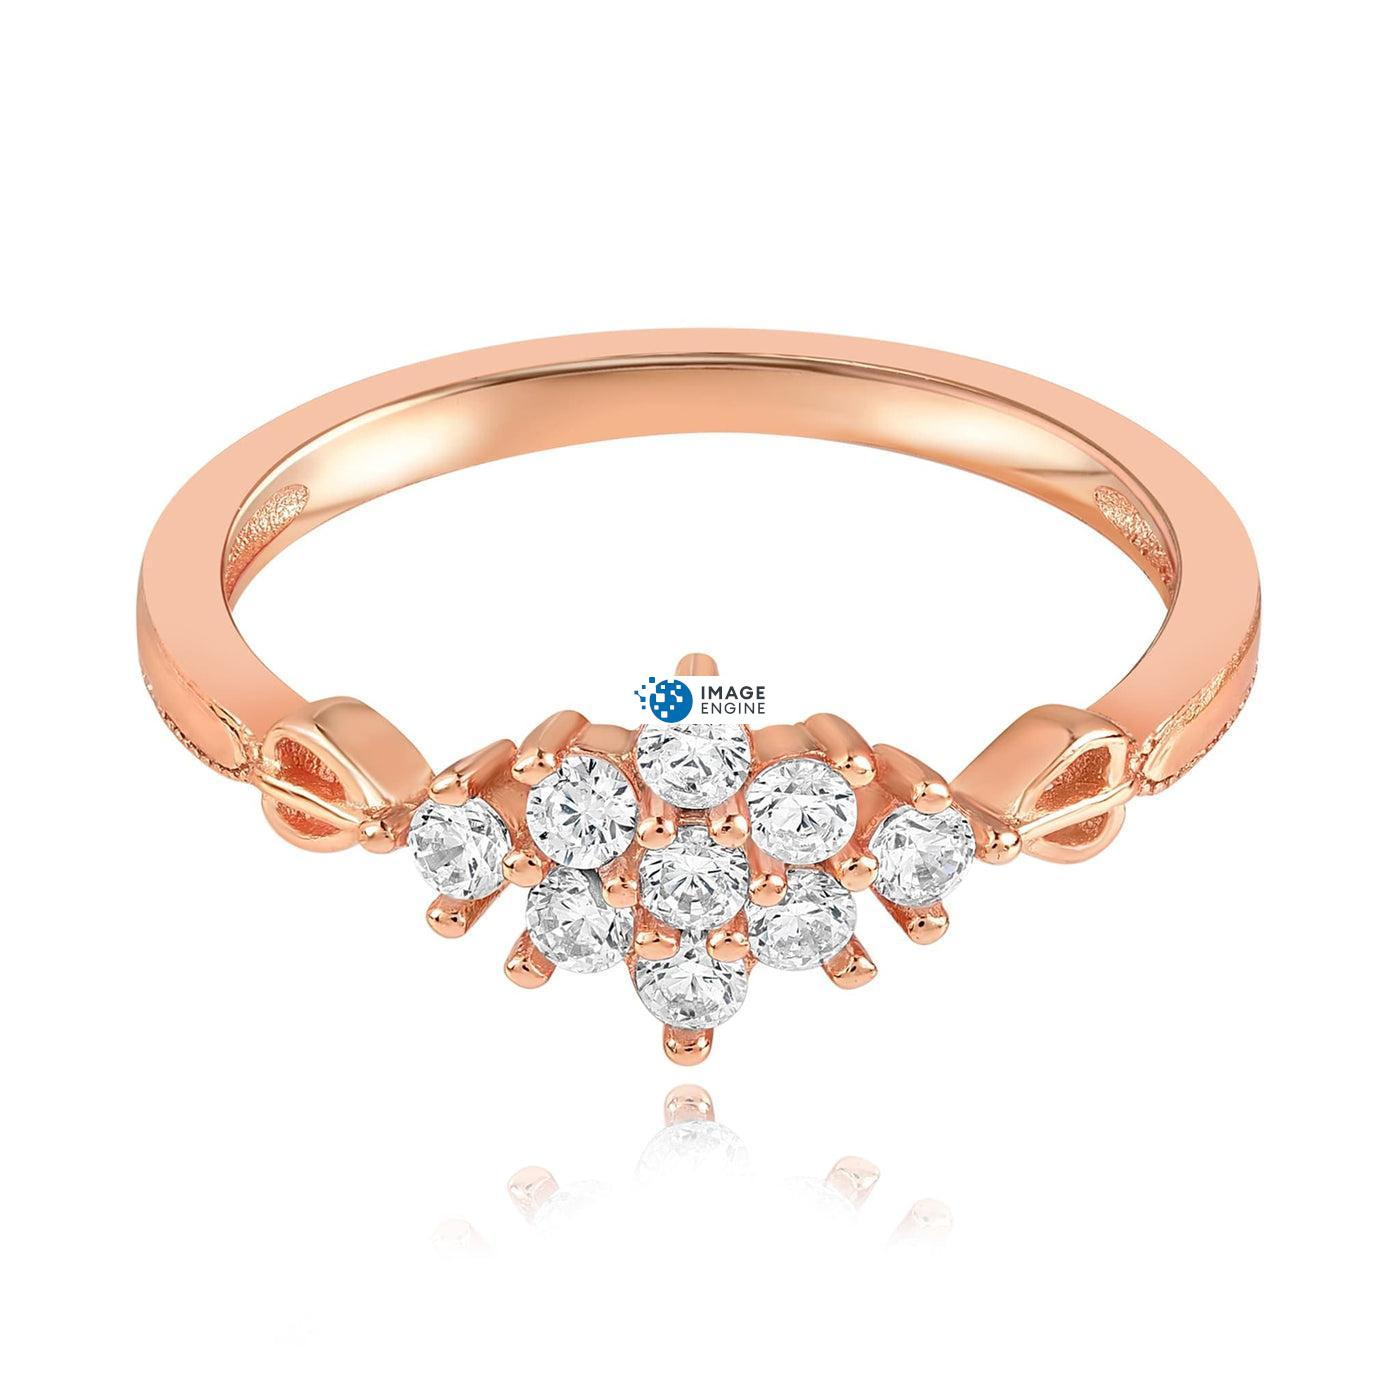 Sarah Snowflake Dainty Ring - Front View Facing Down - 18K Rose Gold Vermeil